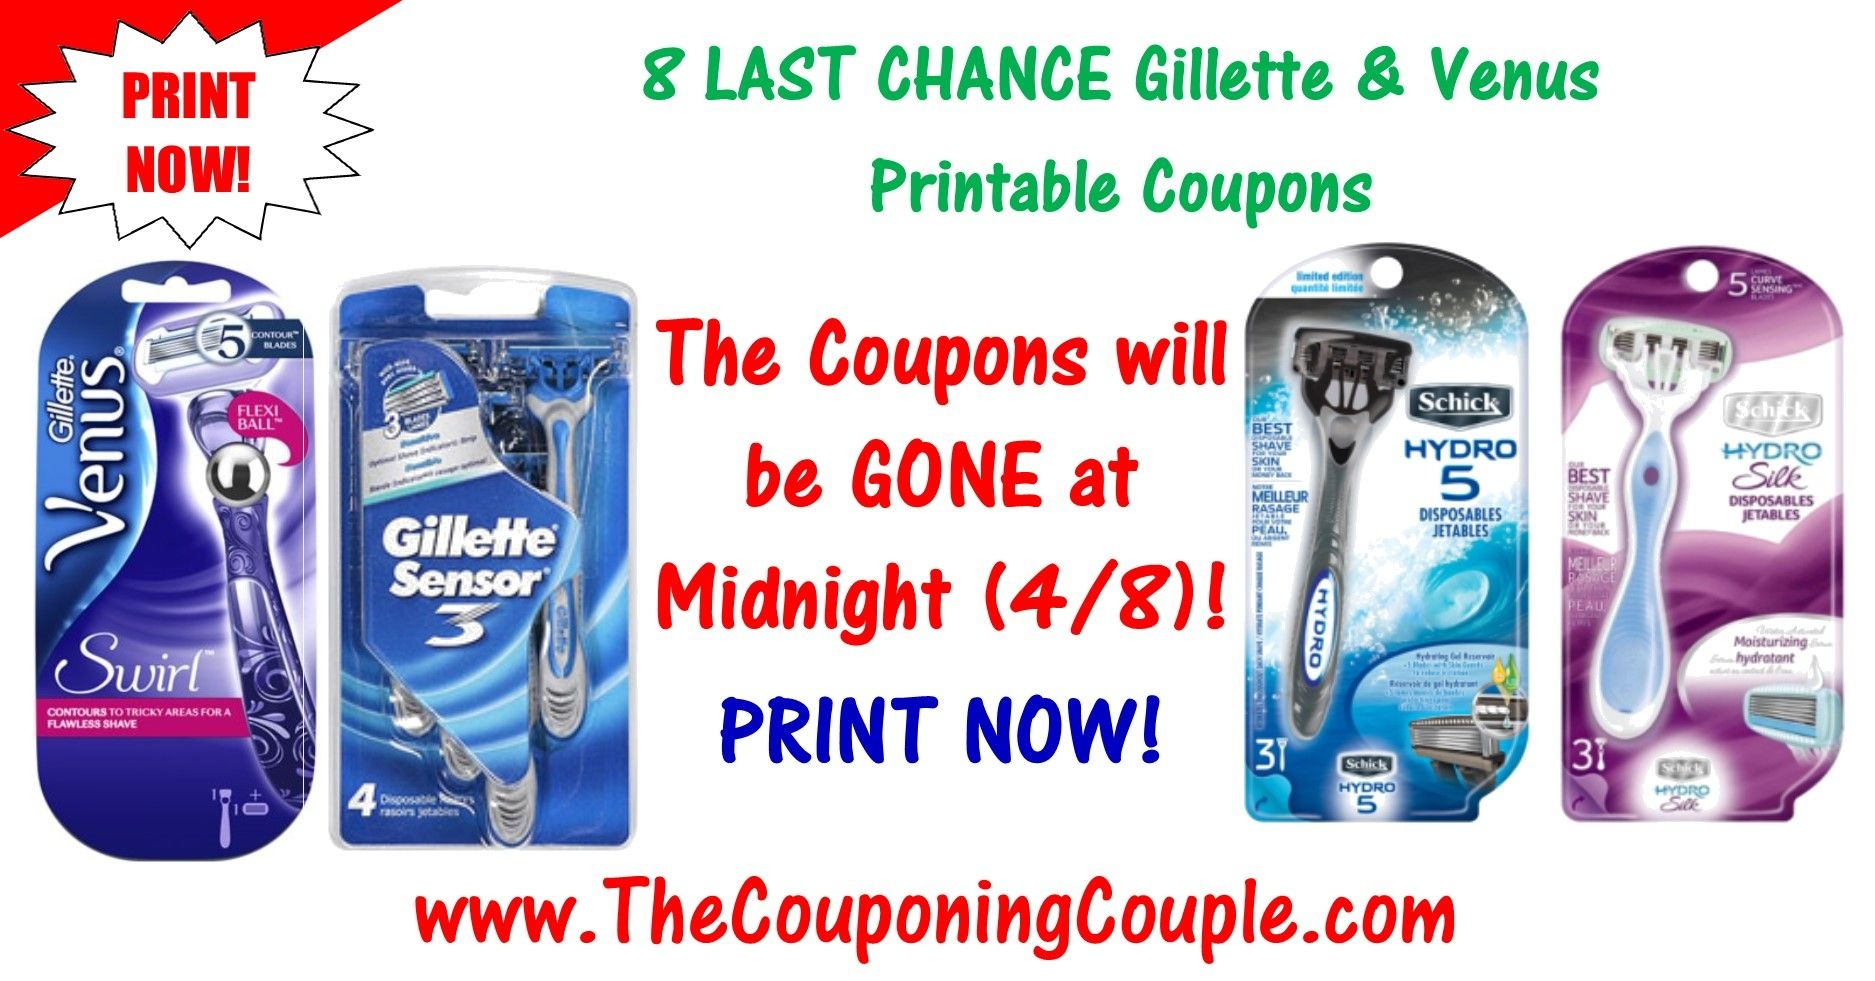 4 Gillette Printable Coupons Available Now ~ Print These Now - Free Printable Gillette Coupons